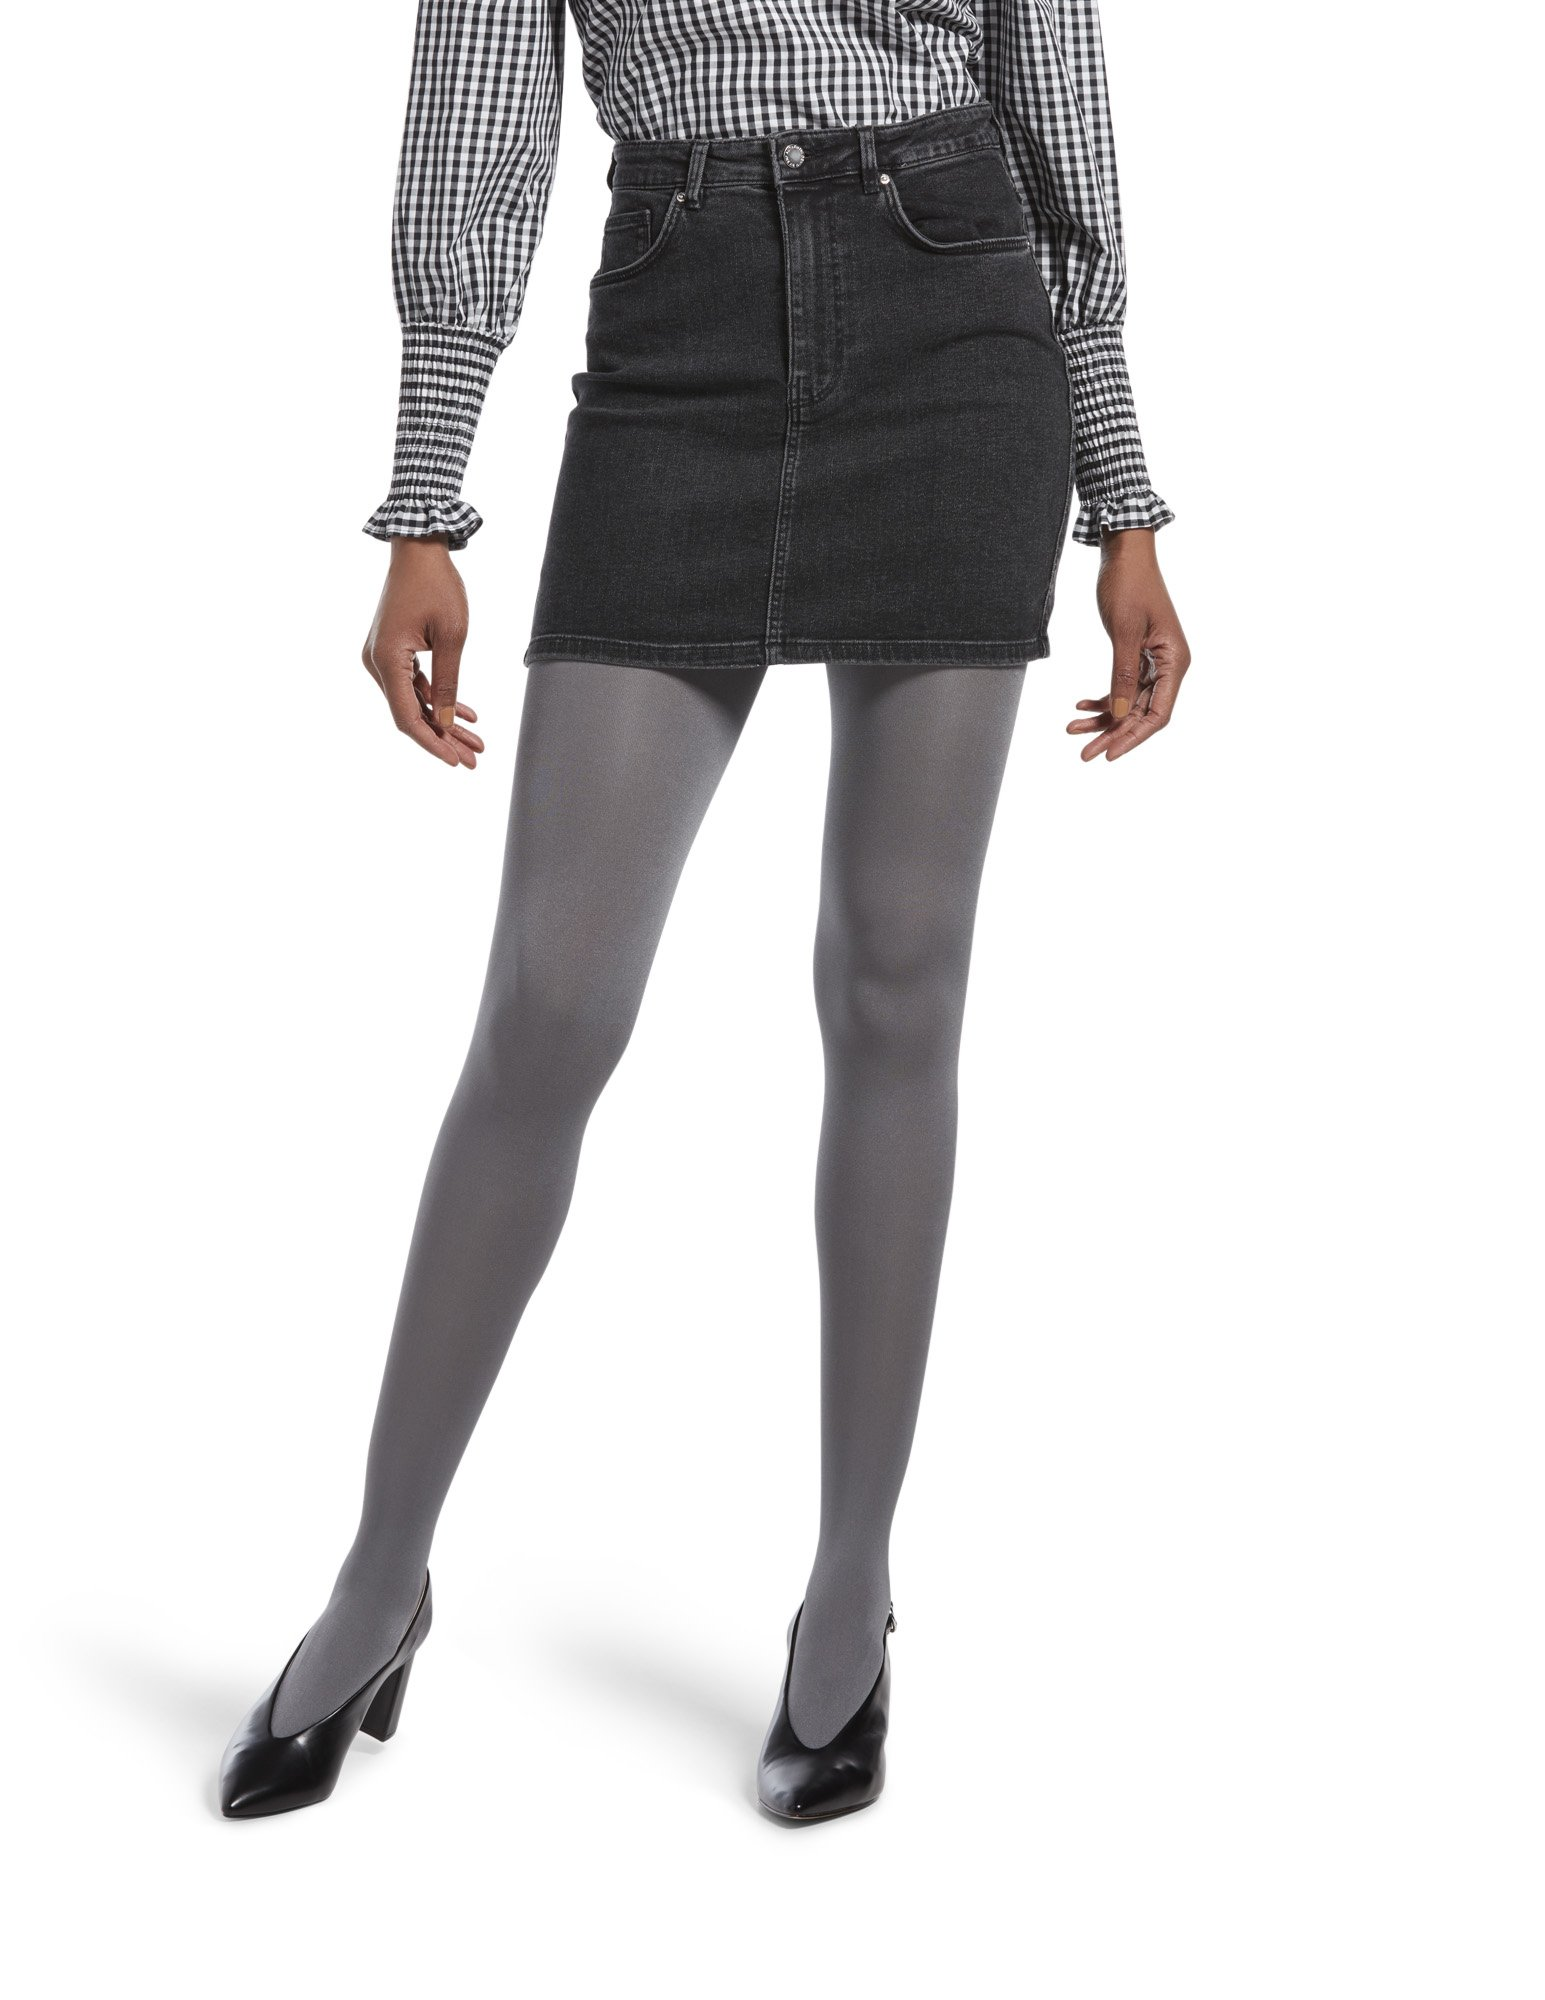 HUE Women's Luster Tights with Control Top, Steel, 1